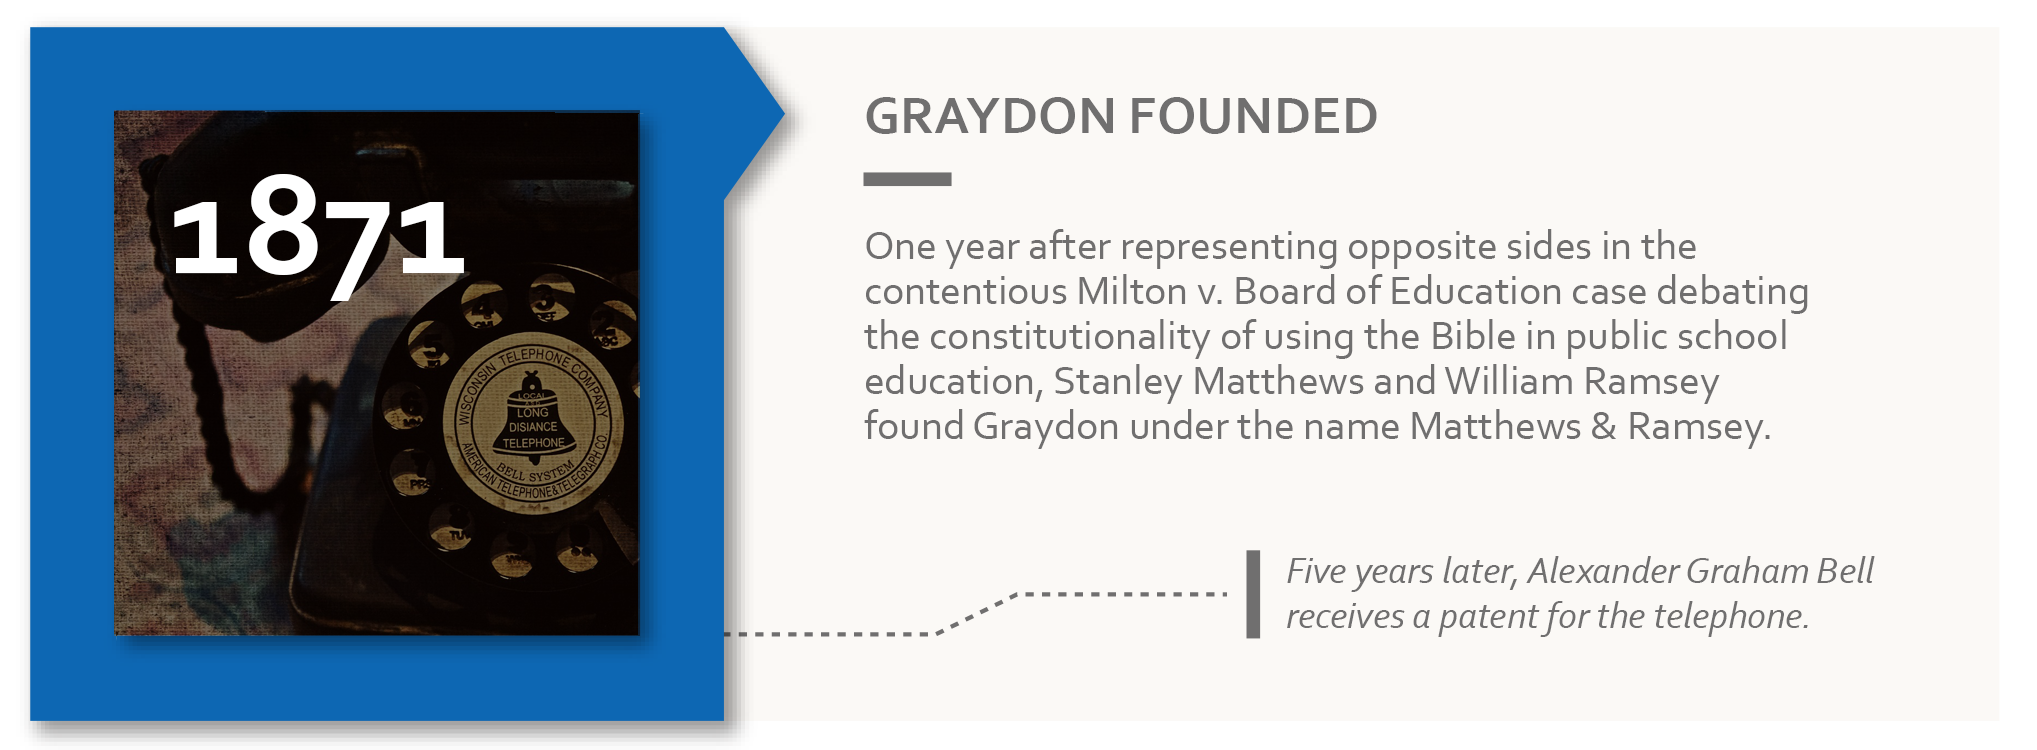 1871-Graydon-Founded